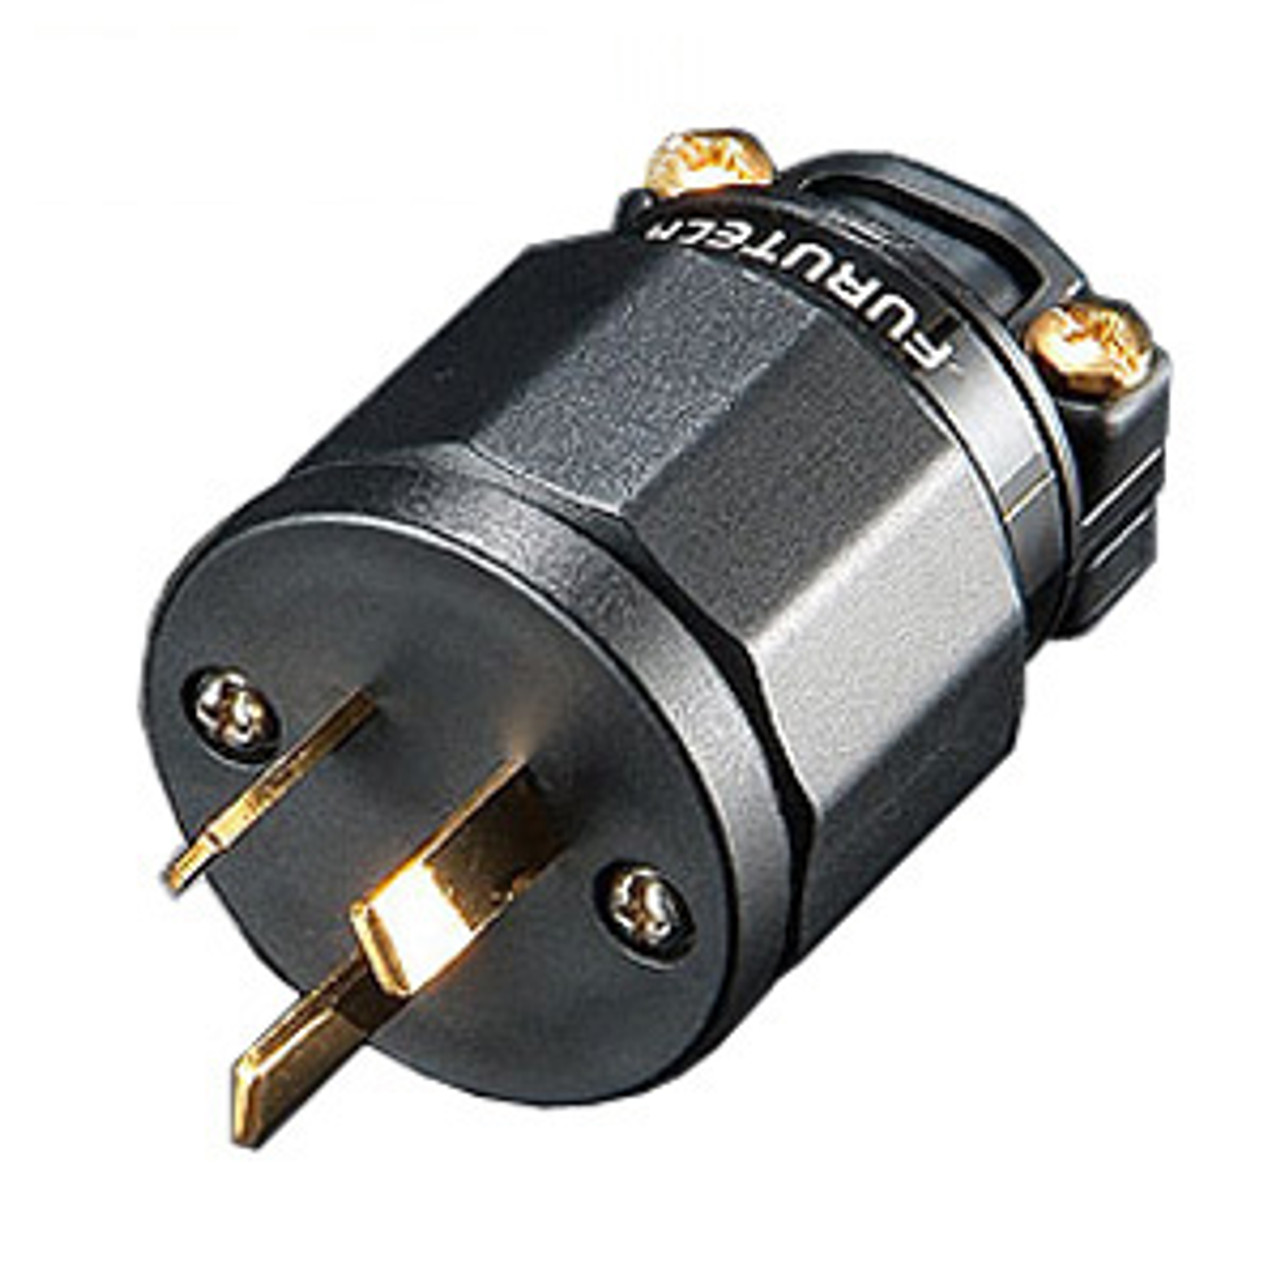 Furutech FI-AU3112G Gold power connector